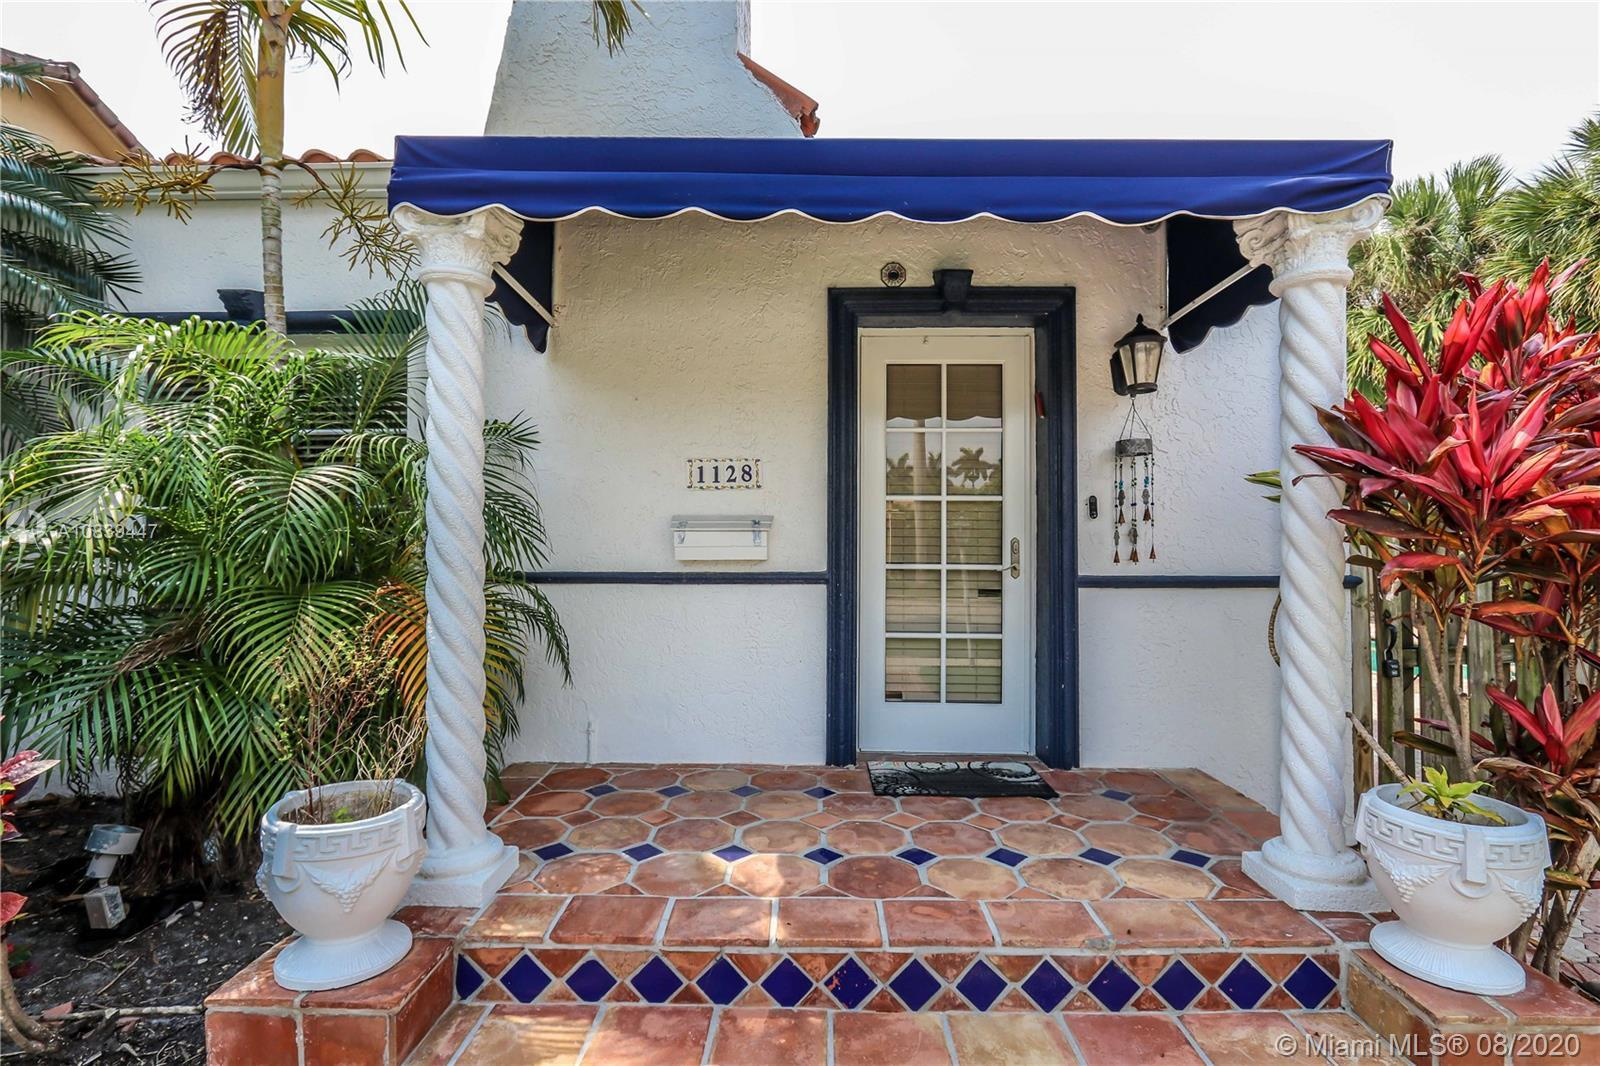 This rare 1939 Spanish Style Estado home located in one of Hollywood's Lakes Landmark Streets loaded